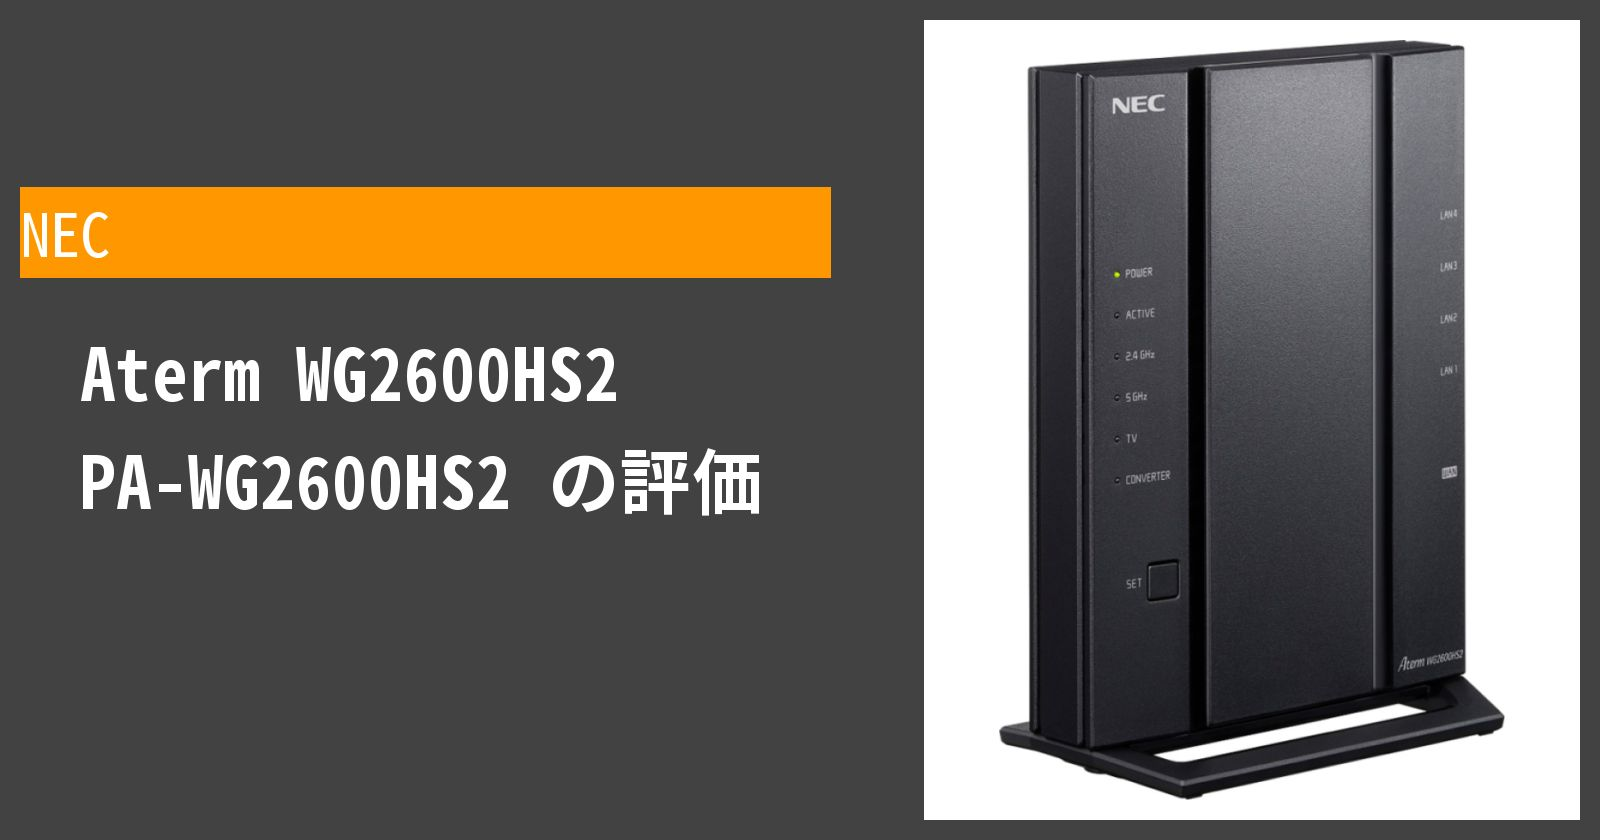 Aterm WG2600HS2 PA-WG2600HS2を徹底評価